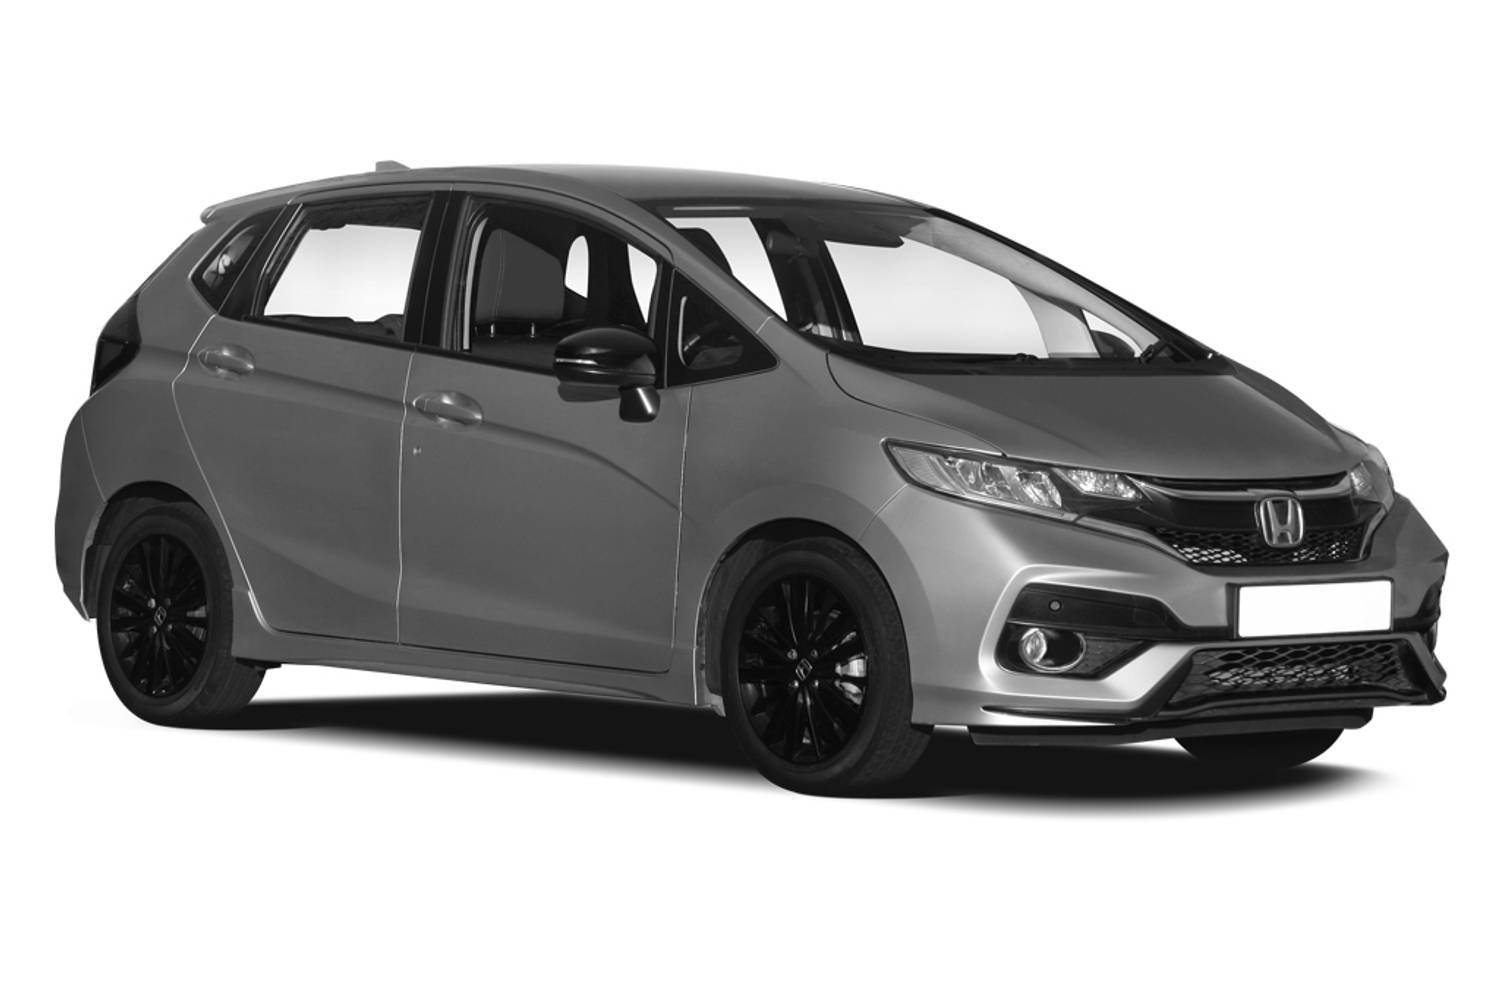 Honda Jazz Hatchback i-VTEC 5dr Front Three Quarter